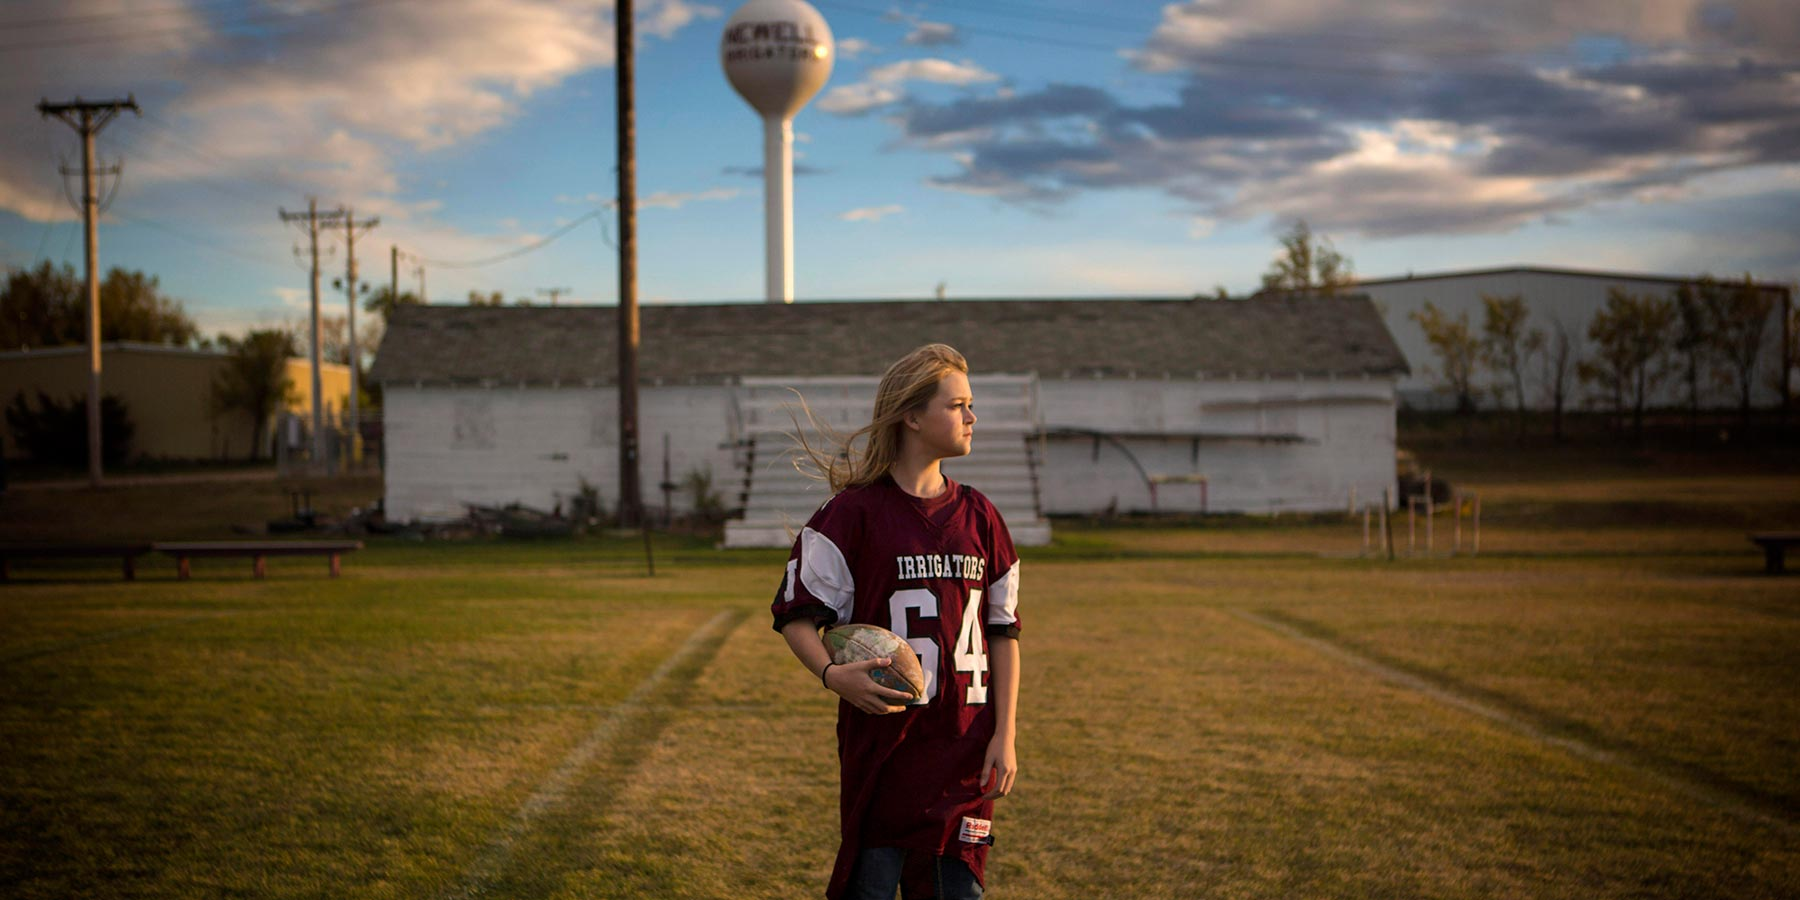 Rachel Boesem, a linebacker for the Newell Irrigators, plays football for her high school team with the same jersey number (64) as her late brother, Donovan